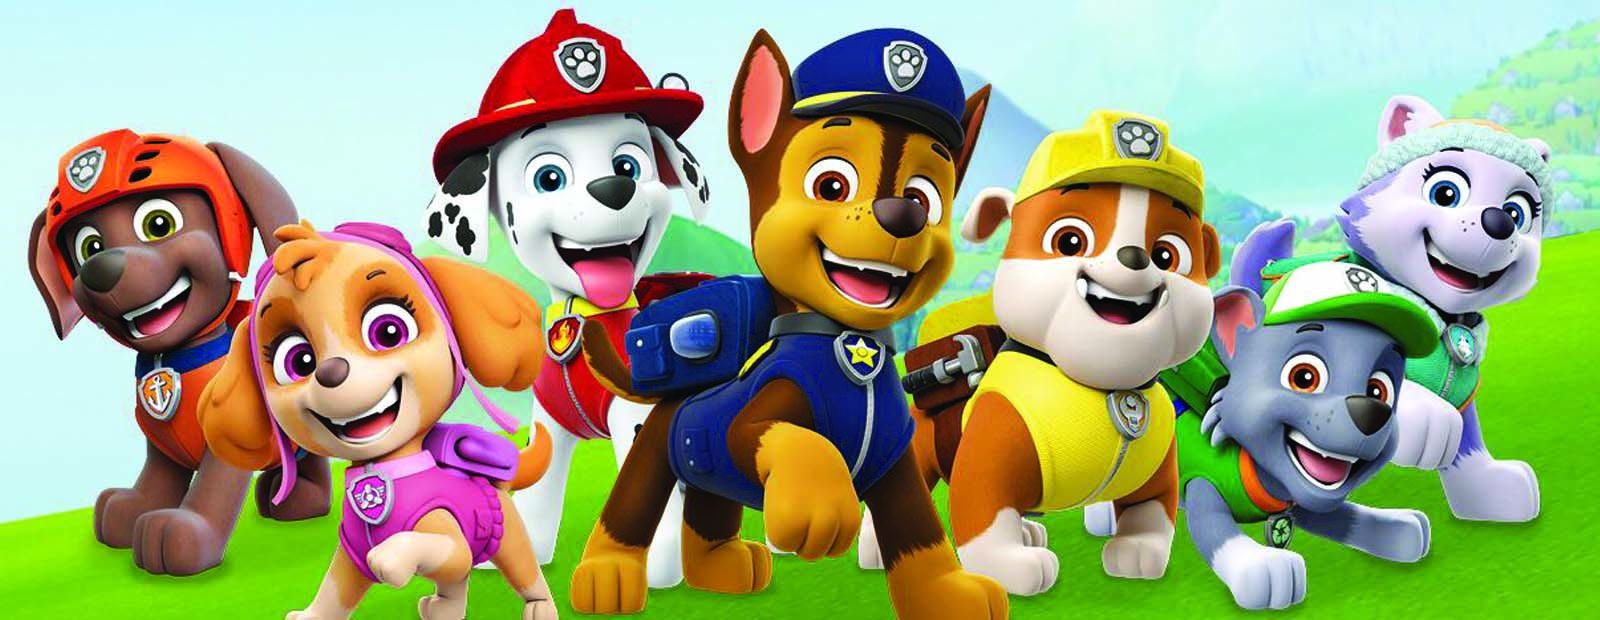 PAW Patrol friends